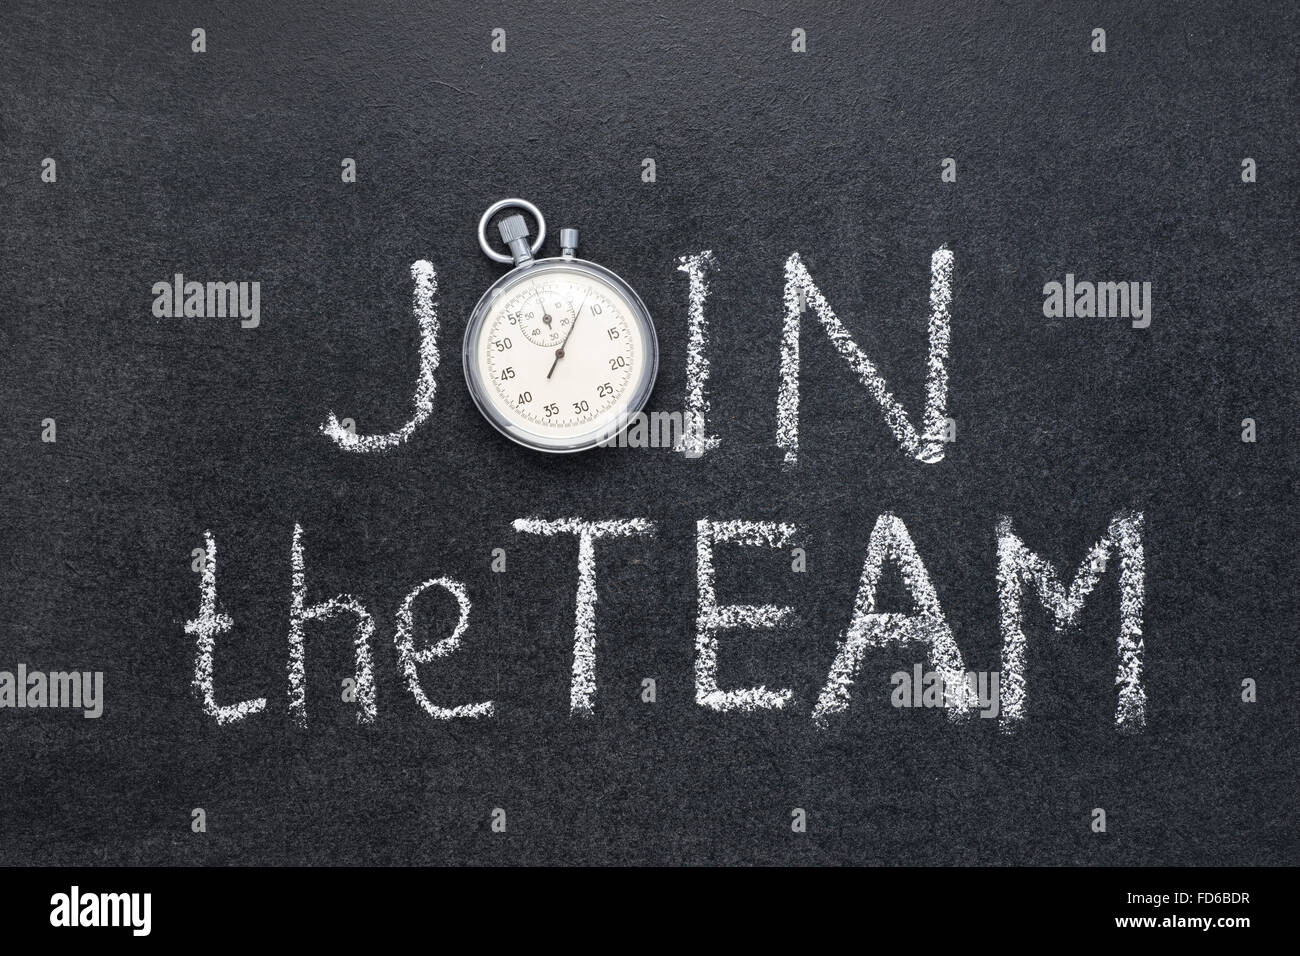 join the team phrase handwritten on chalkboard with vintage precise stopwatch used instead of O - Stock Image